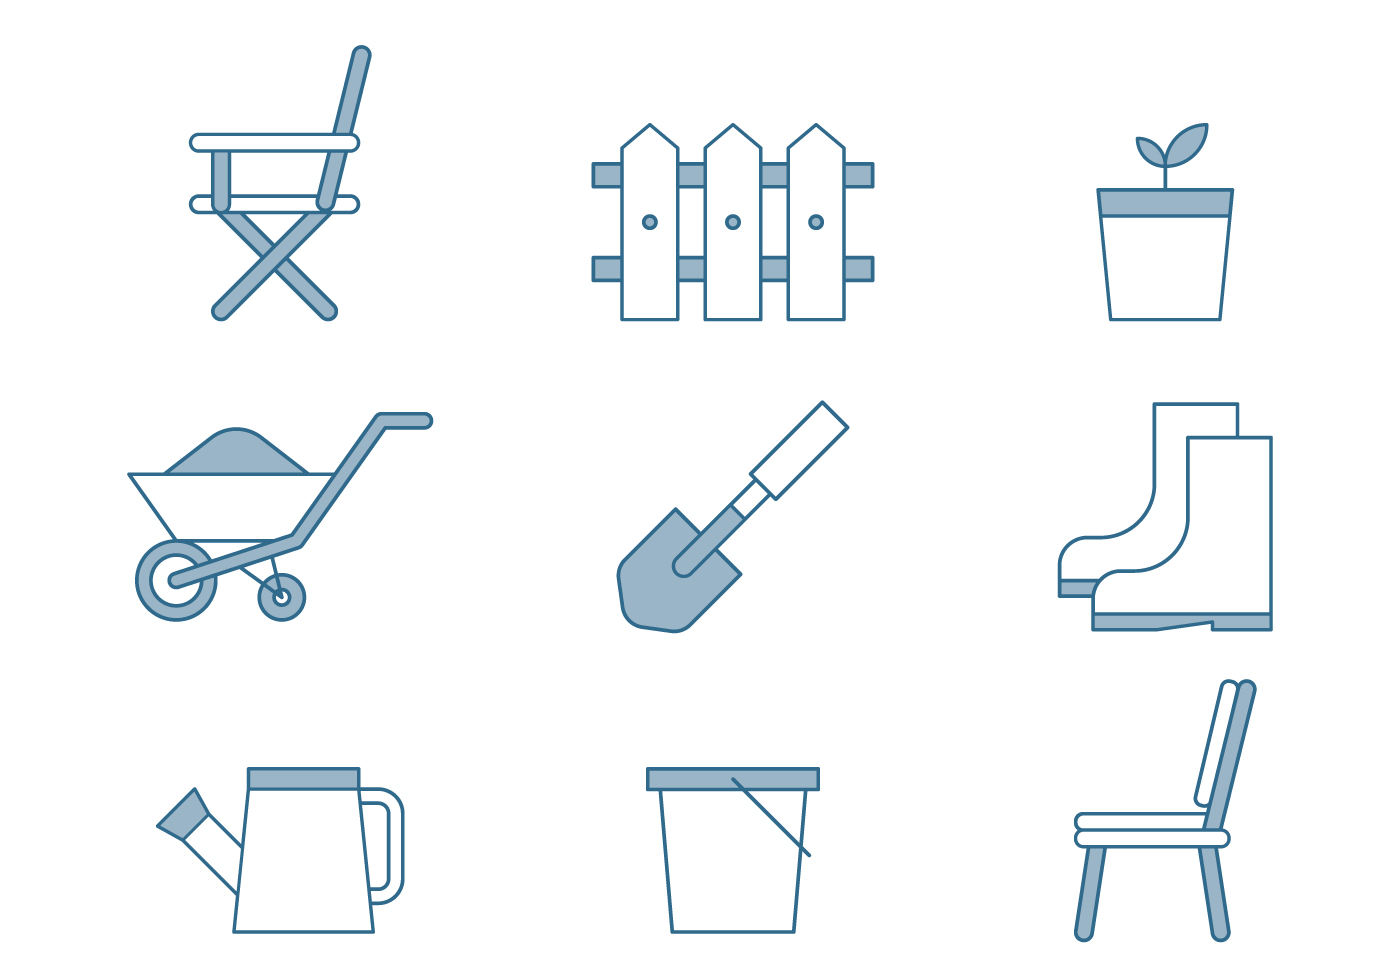 Lawn care icons download free vector art stock graphics images for Lawn care vector